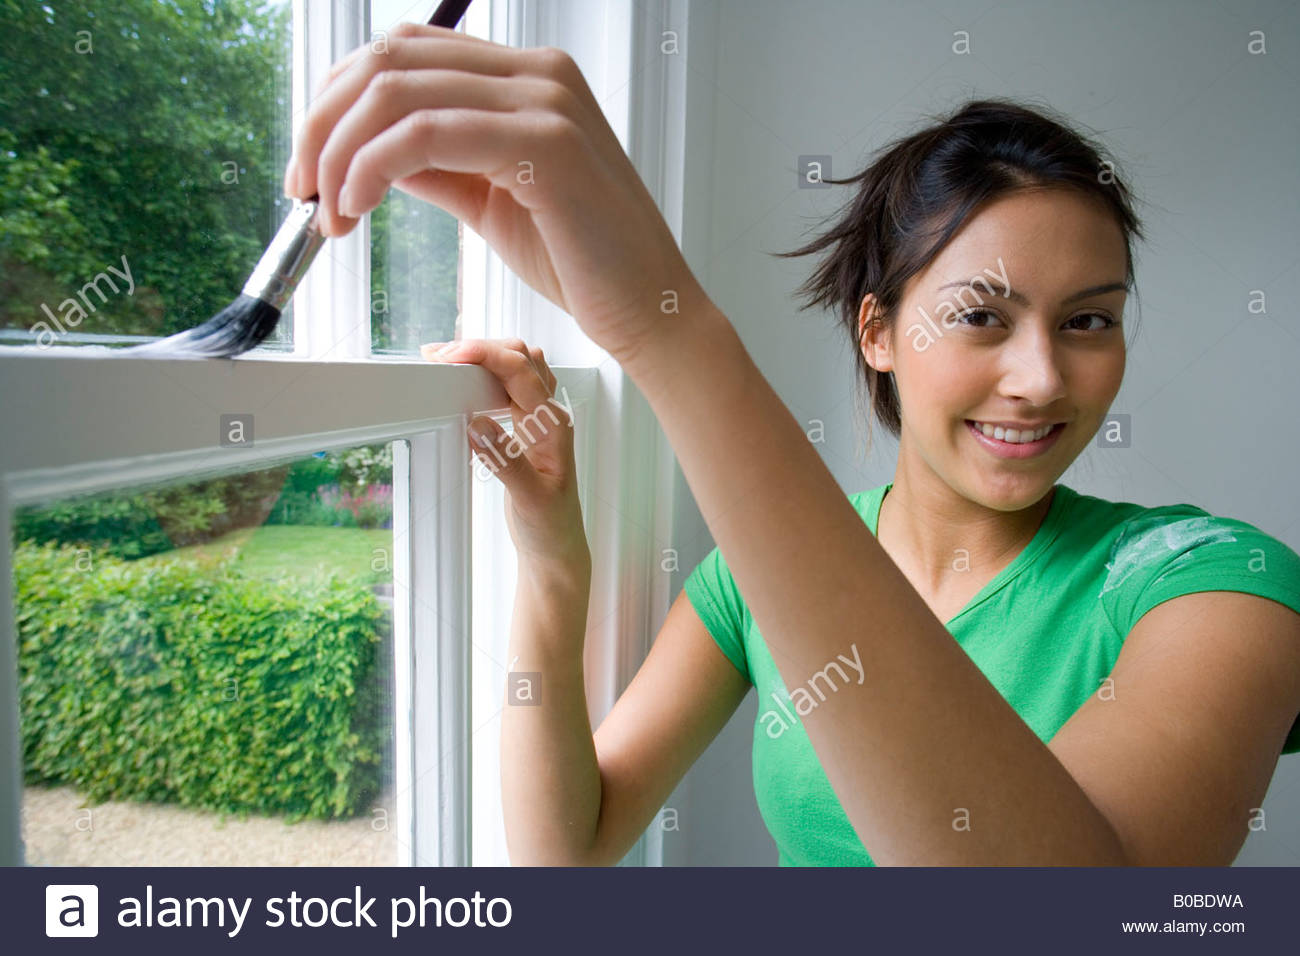 Young woman painting window frame, smiling, portrait, close-up - Stock Image